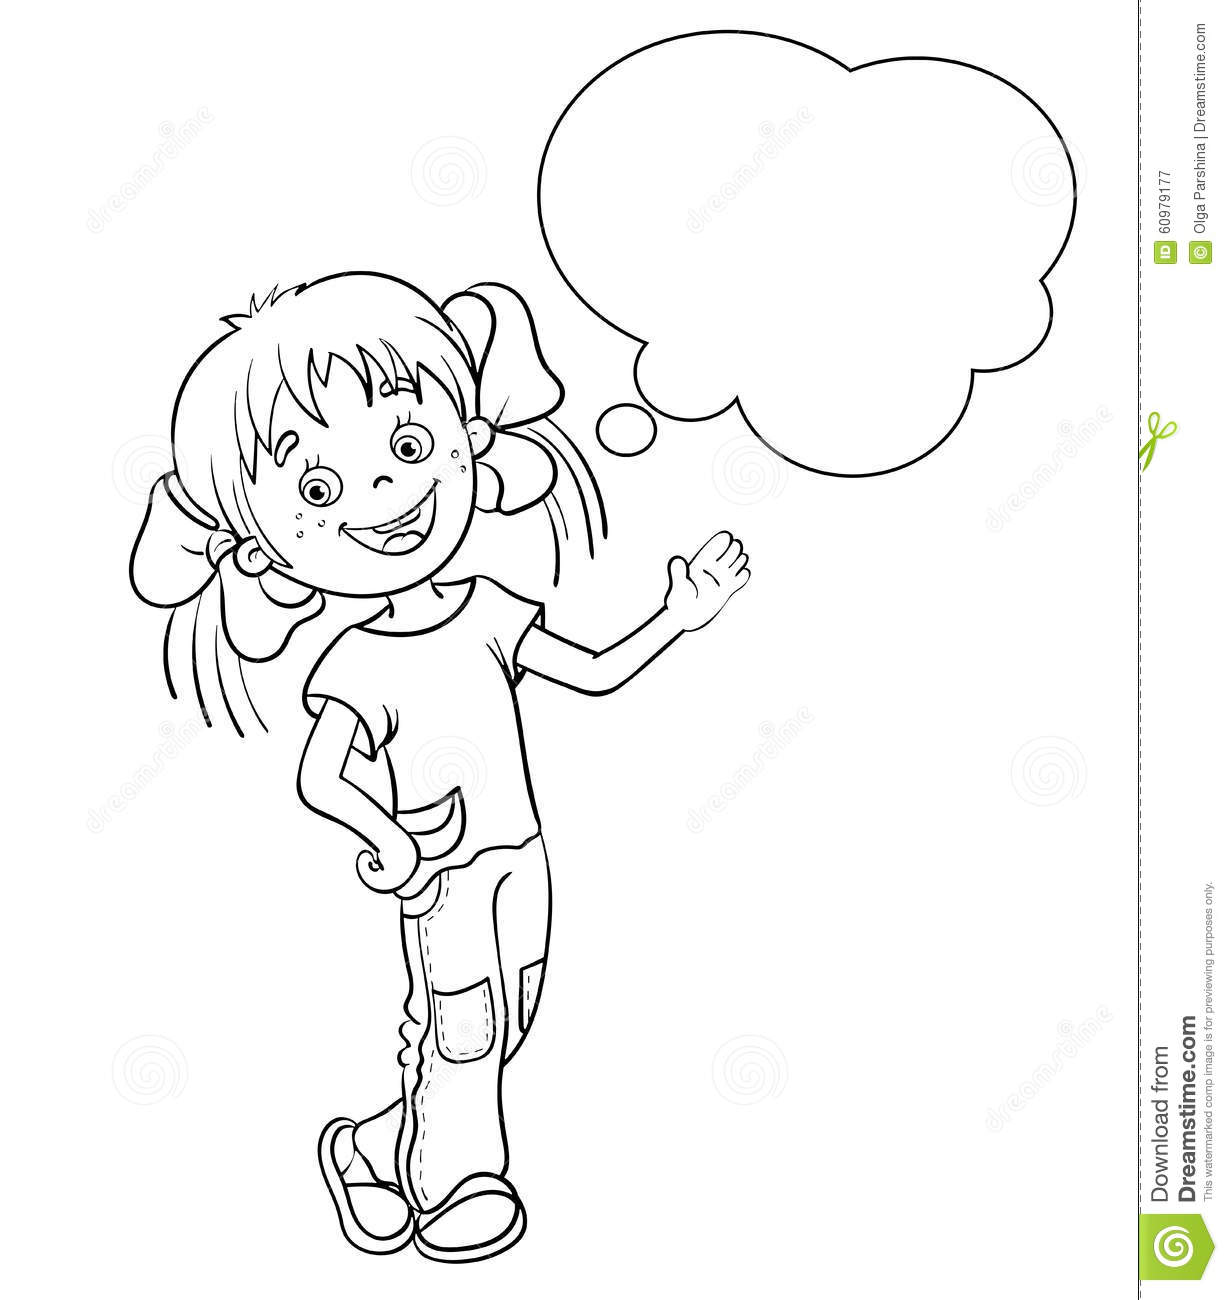 Coloring Page Outline Of A Cartoon Girl With Speech Bubble Stock